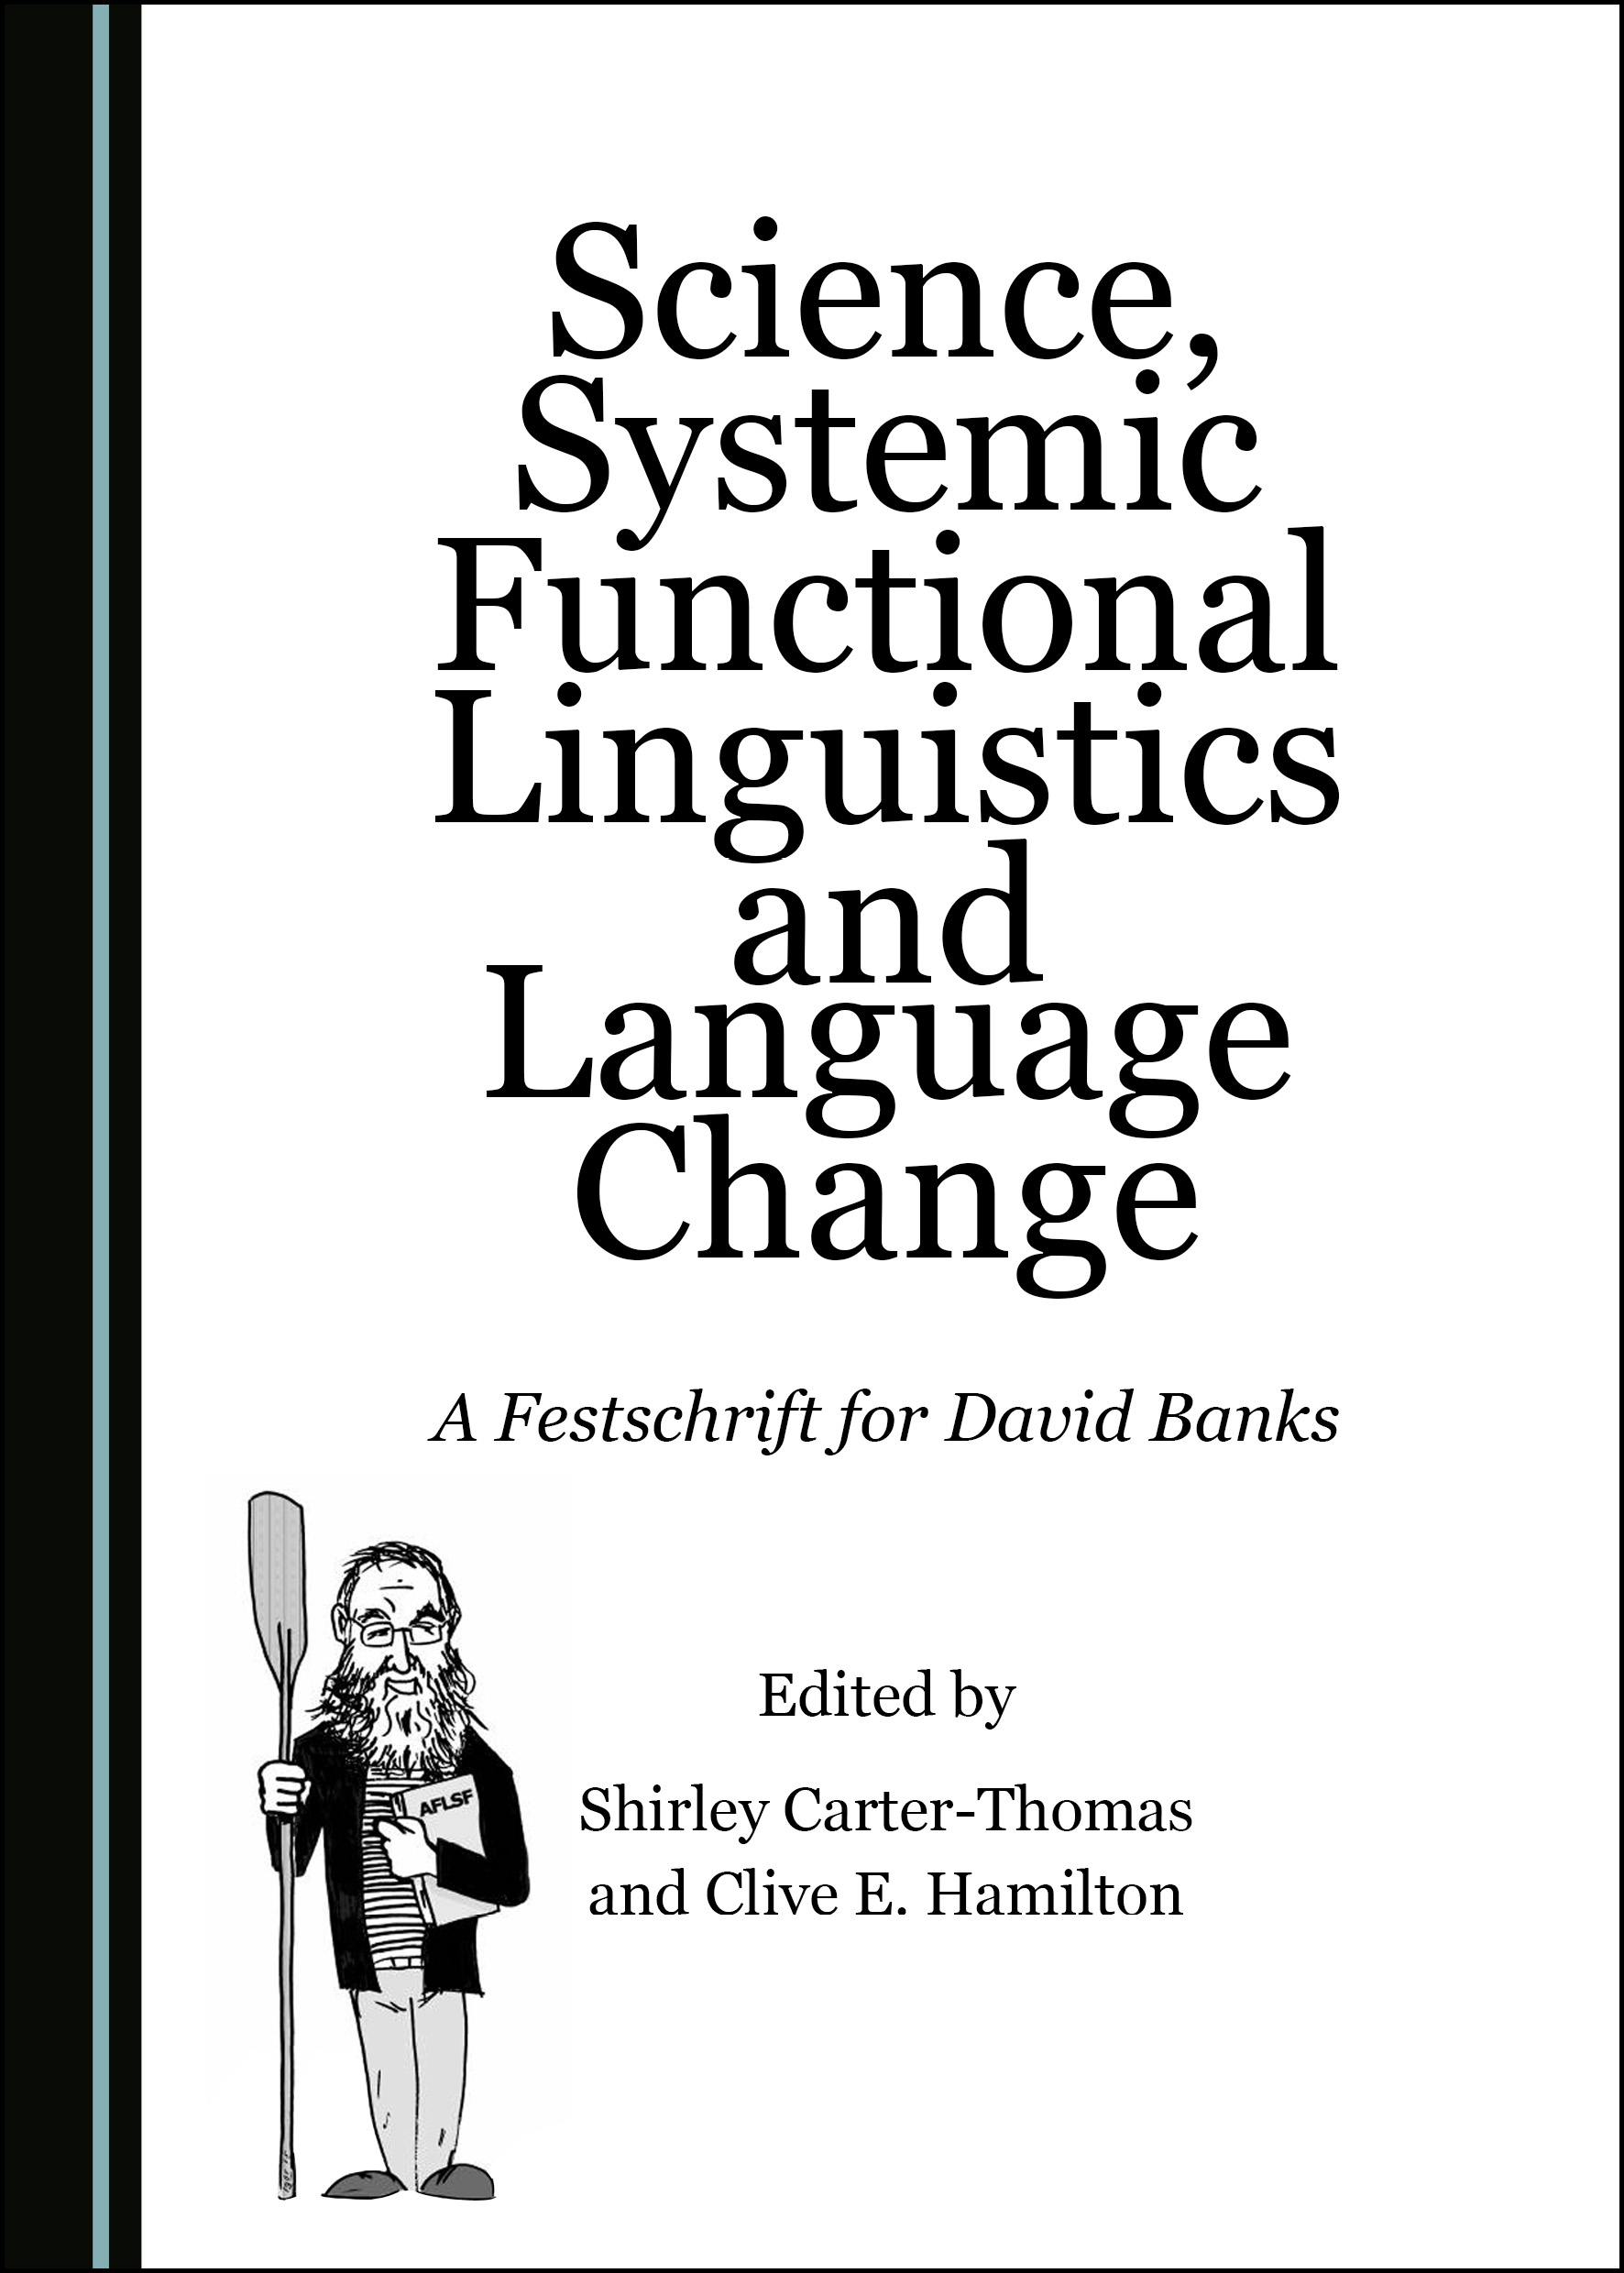 Science, Systemic Functional Linguistics and Language Change: A Festschrift for David Banks